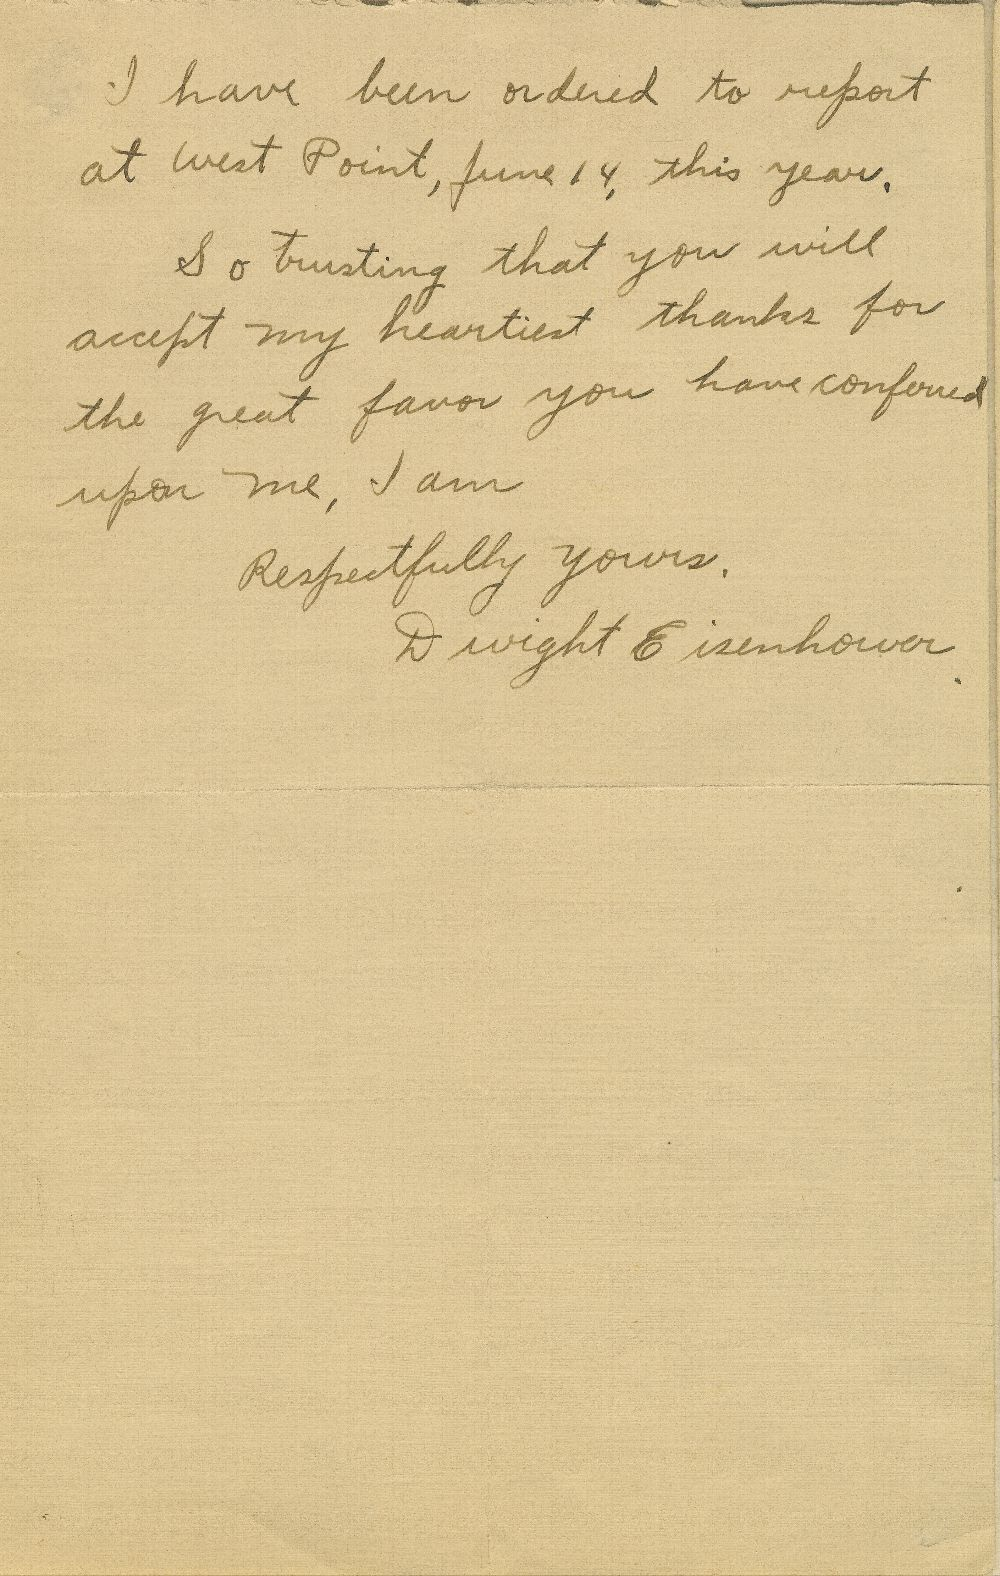 Dwight David Eisenhower to Joseph Little Bristow, United States Senator - 2